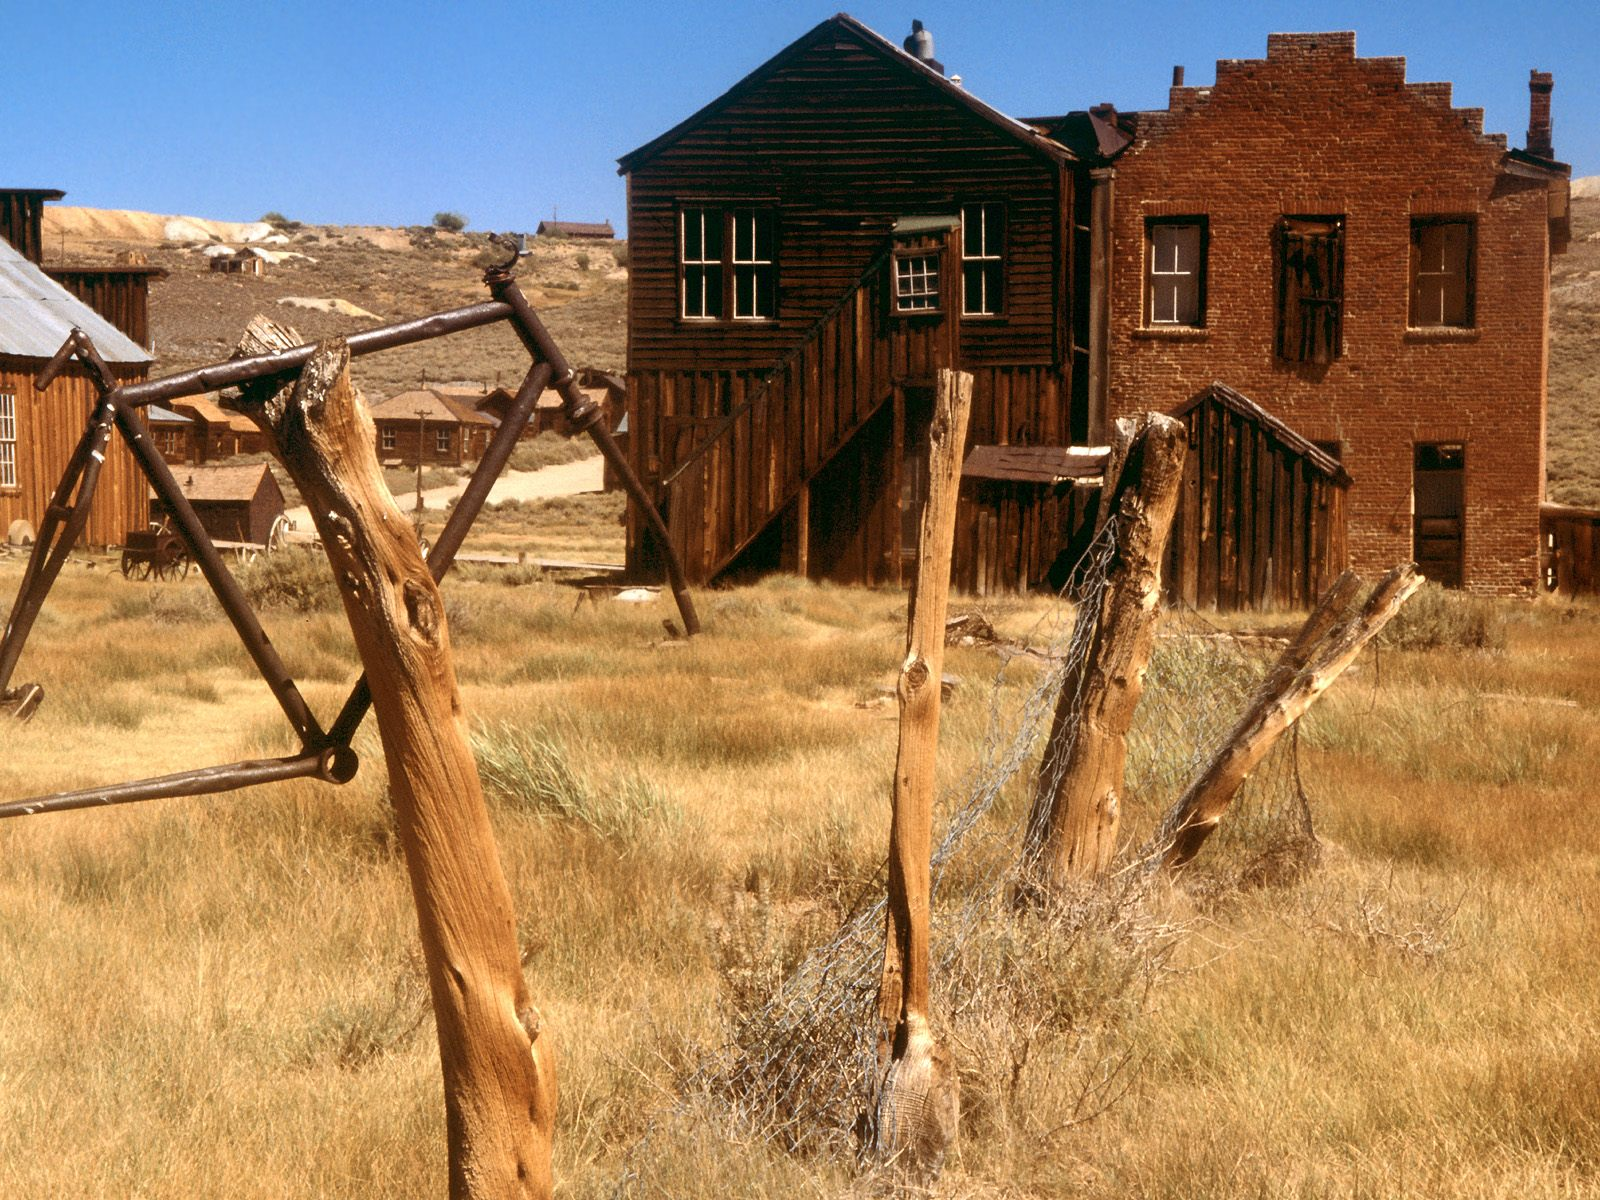 Bodie-Ghost-Town-Bodie-California-Image